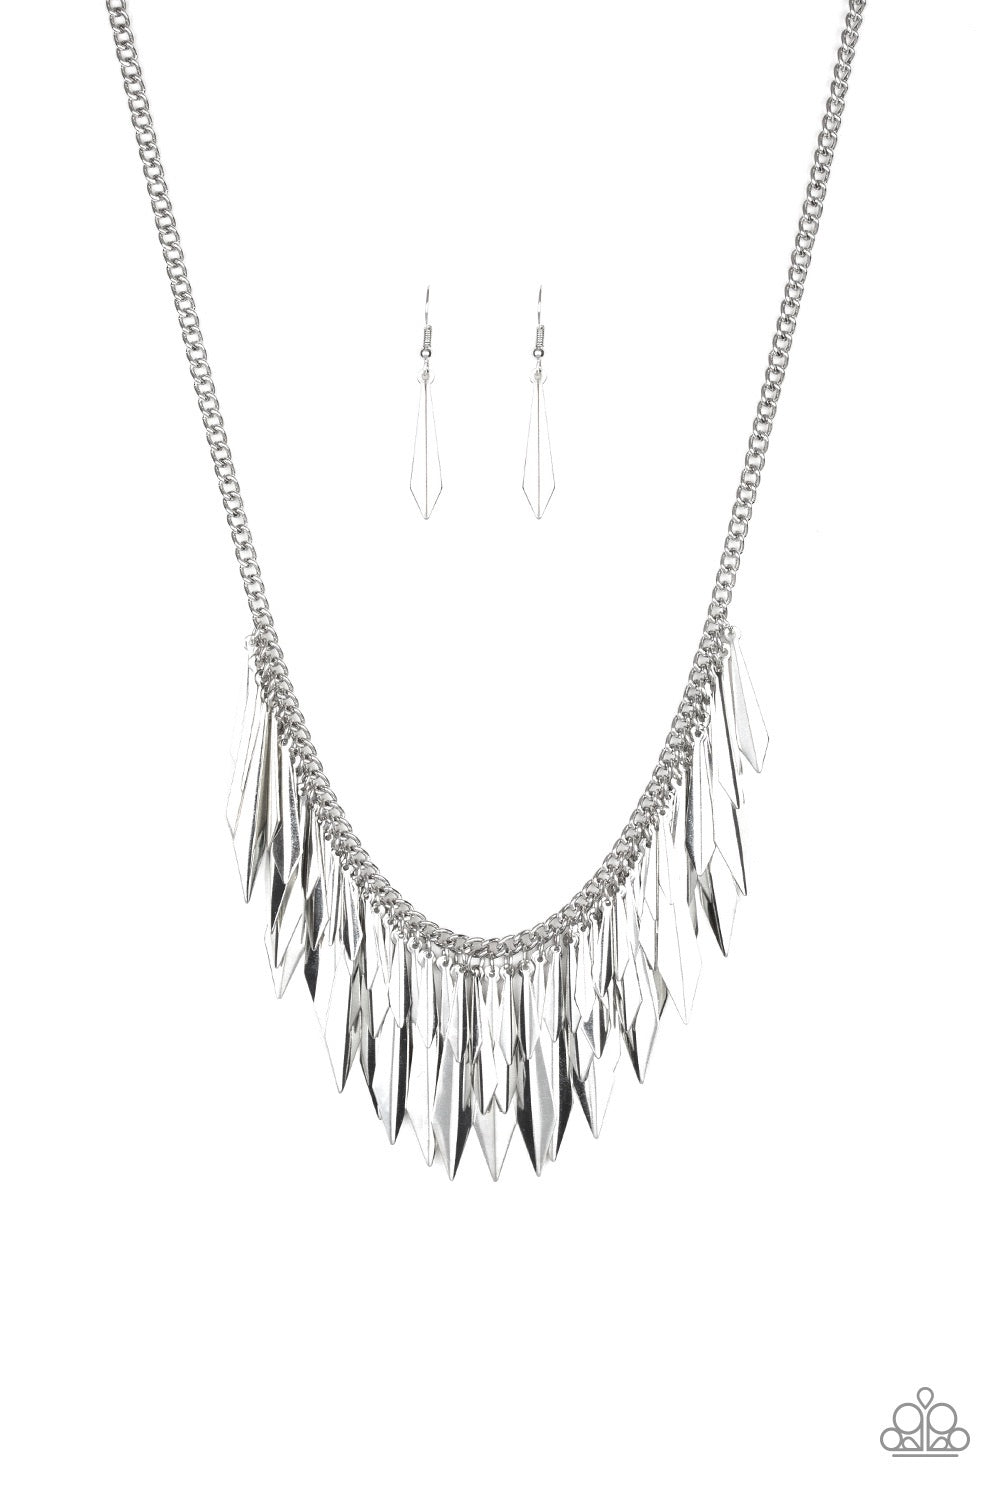 Paparazzi The Thrill - Seeker Necklace -Silver